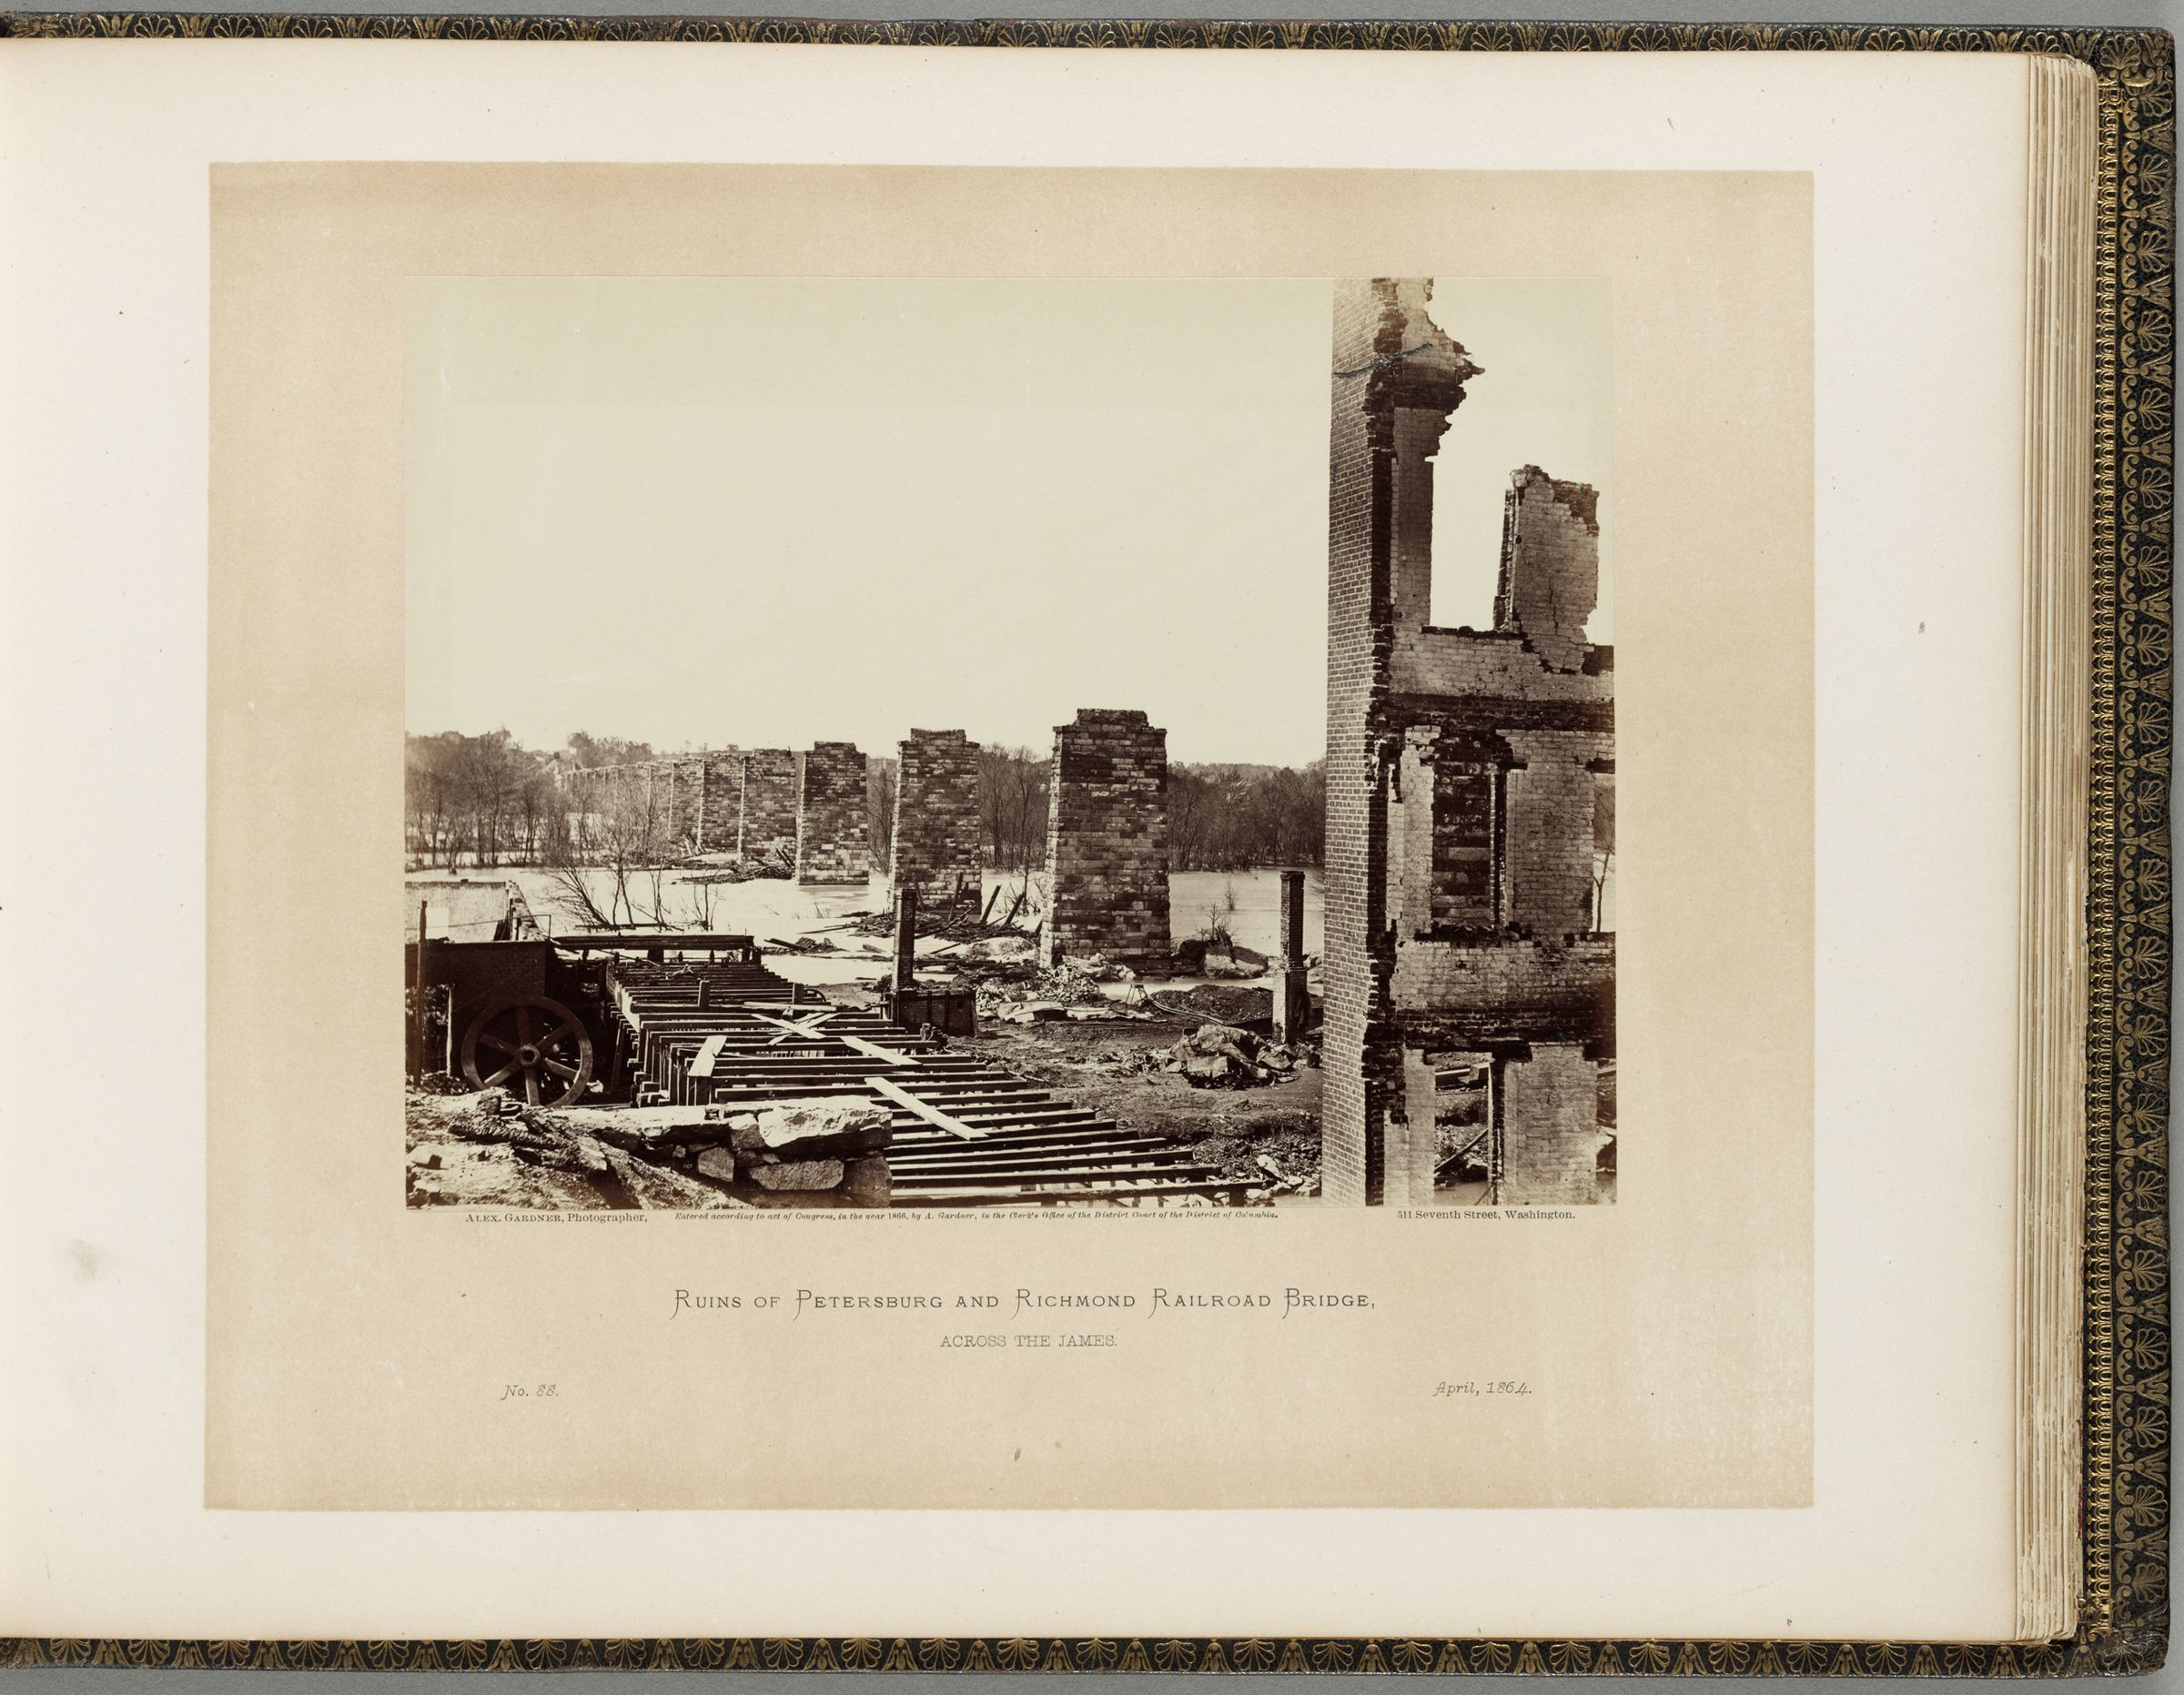 Ruins Of Petersburg And Richmond Railroad Bridge, Across The James